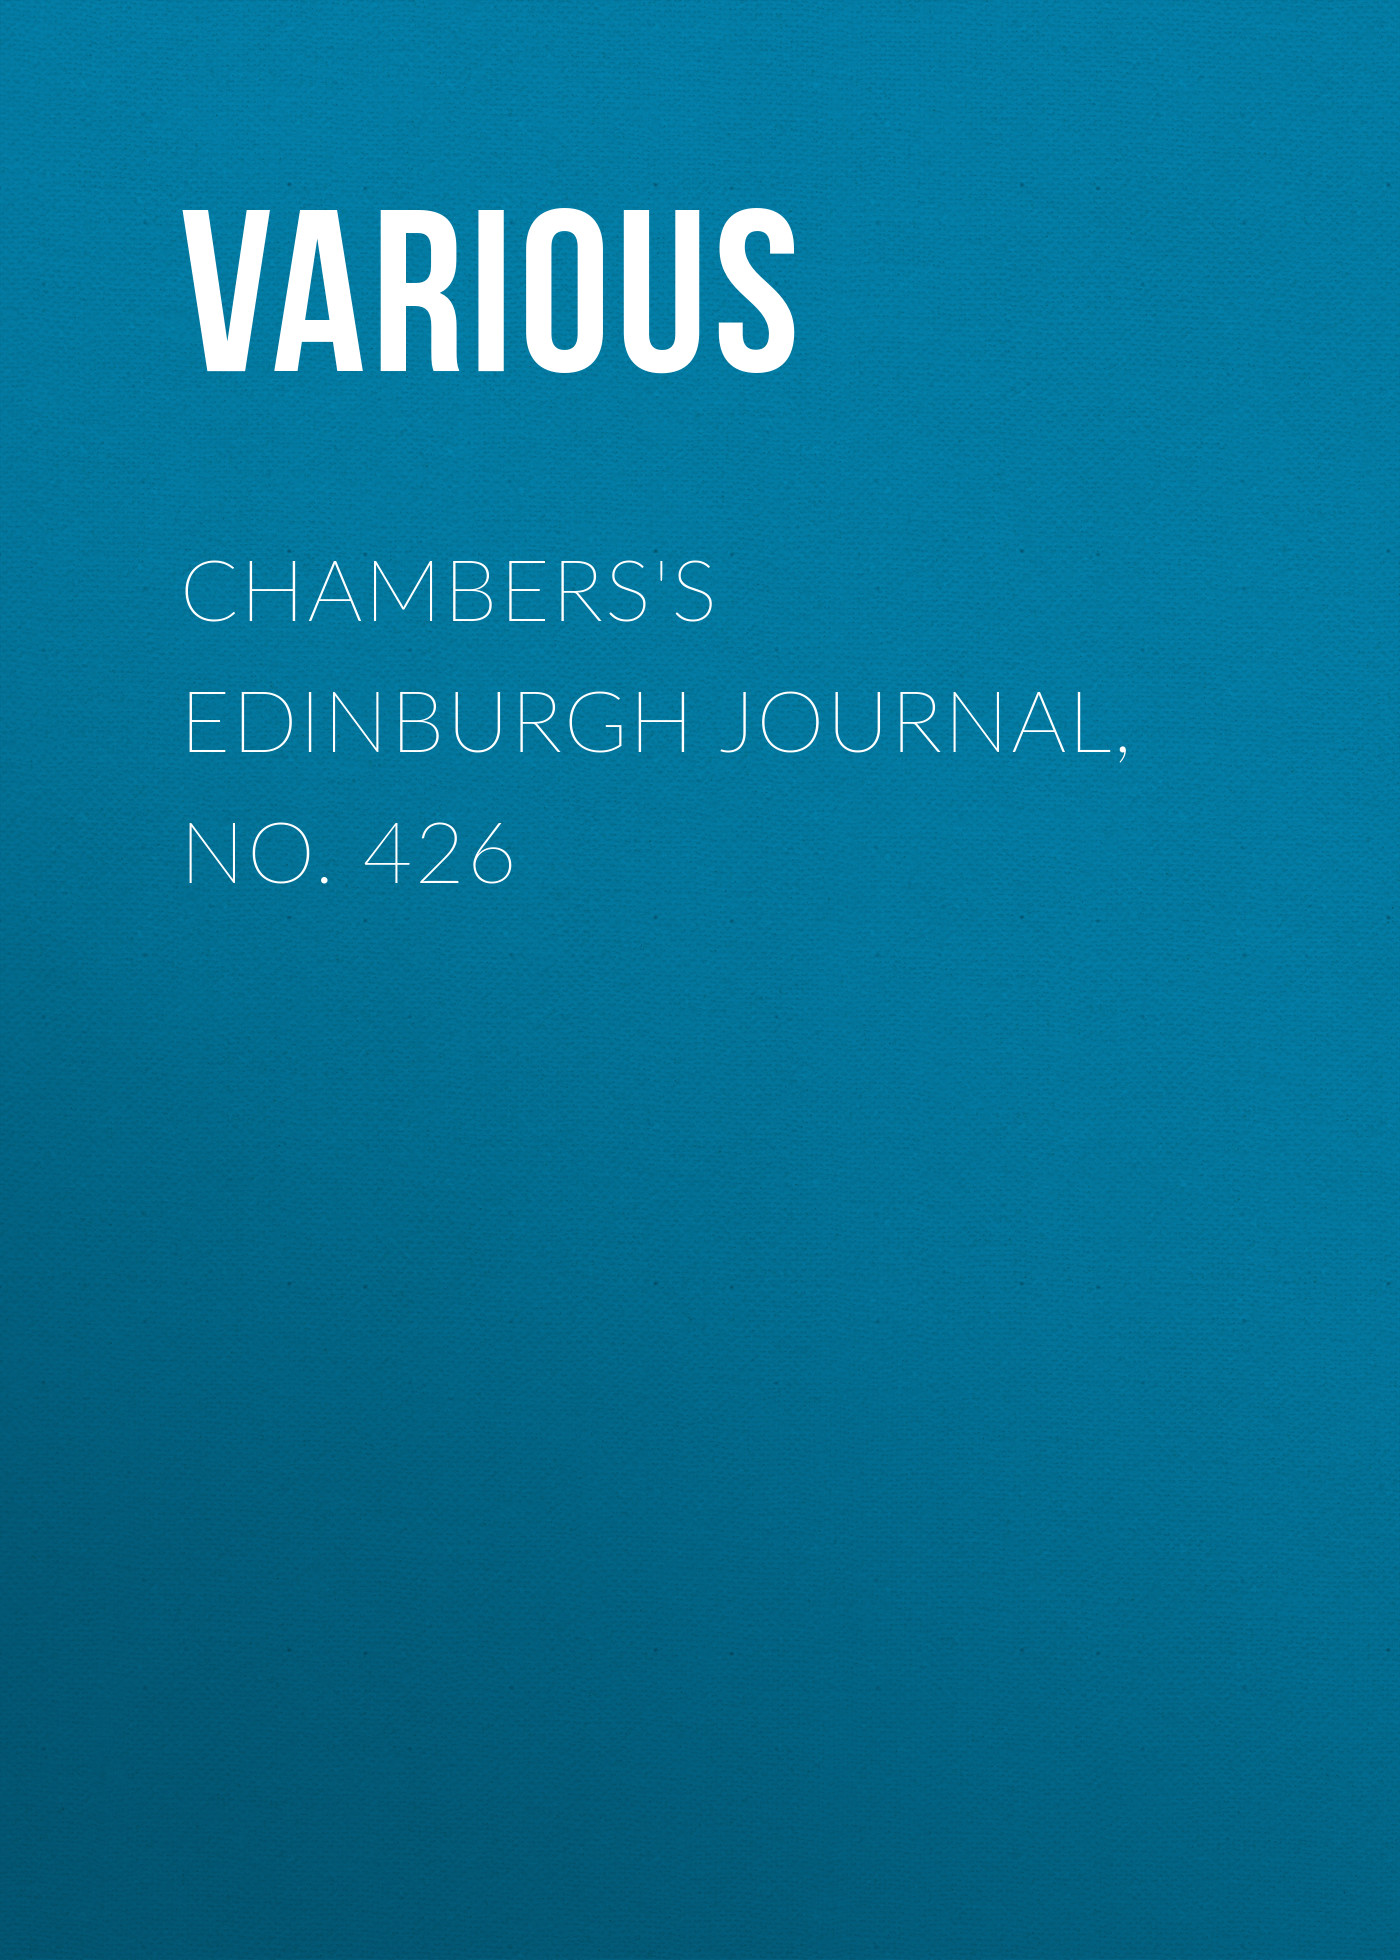 Chambers\'s Edinburgh Journal, No. 426 ( Various  )